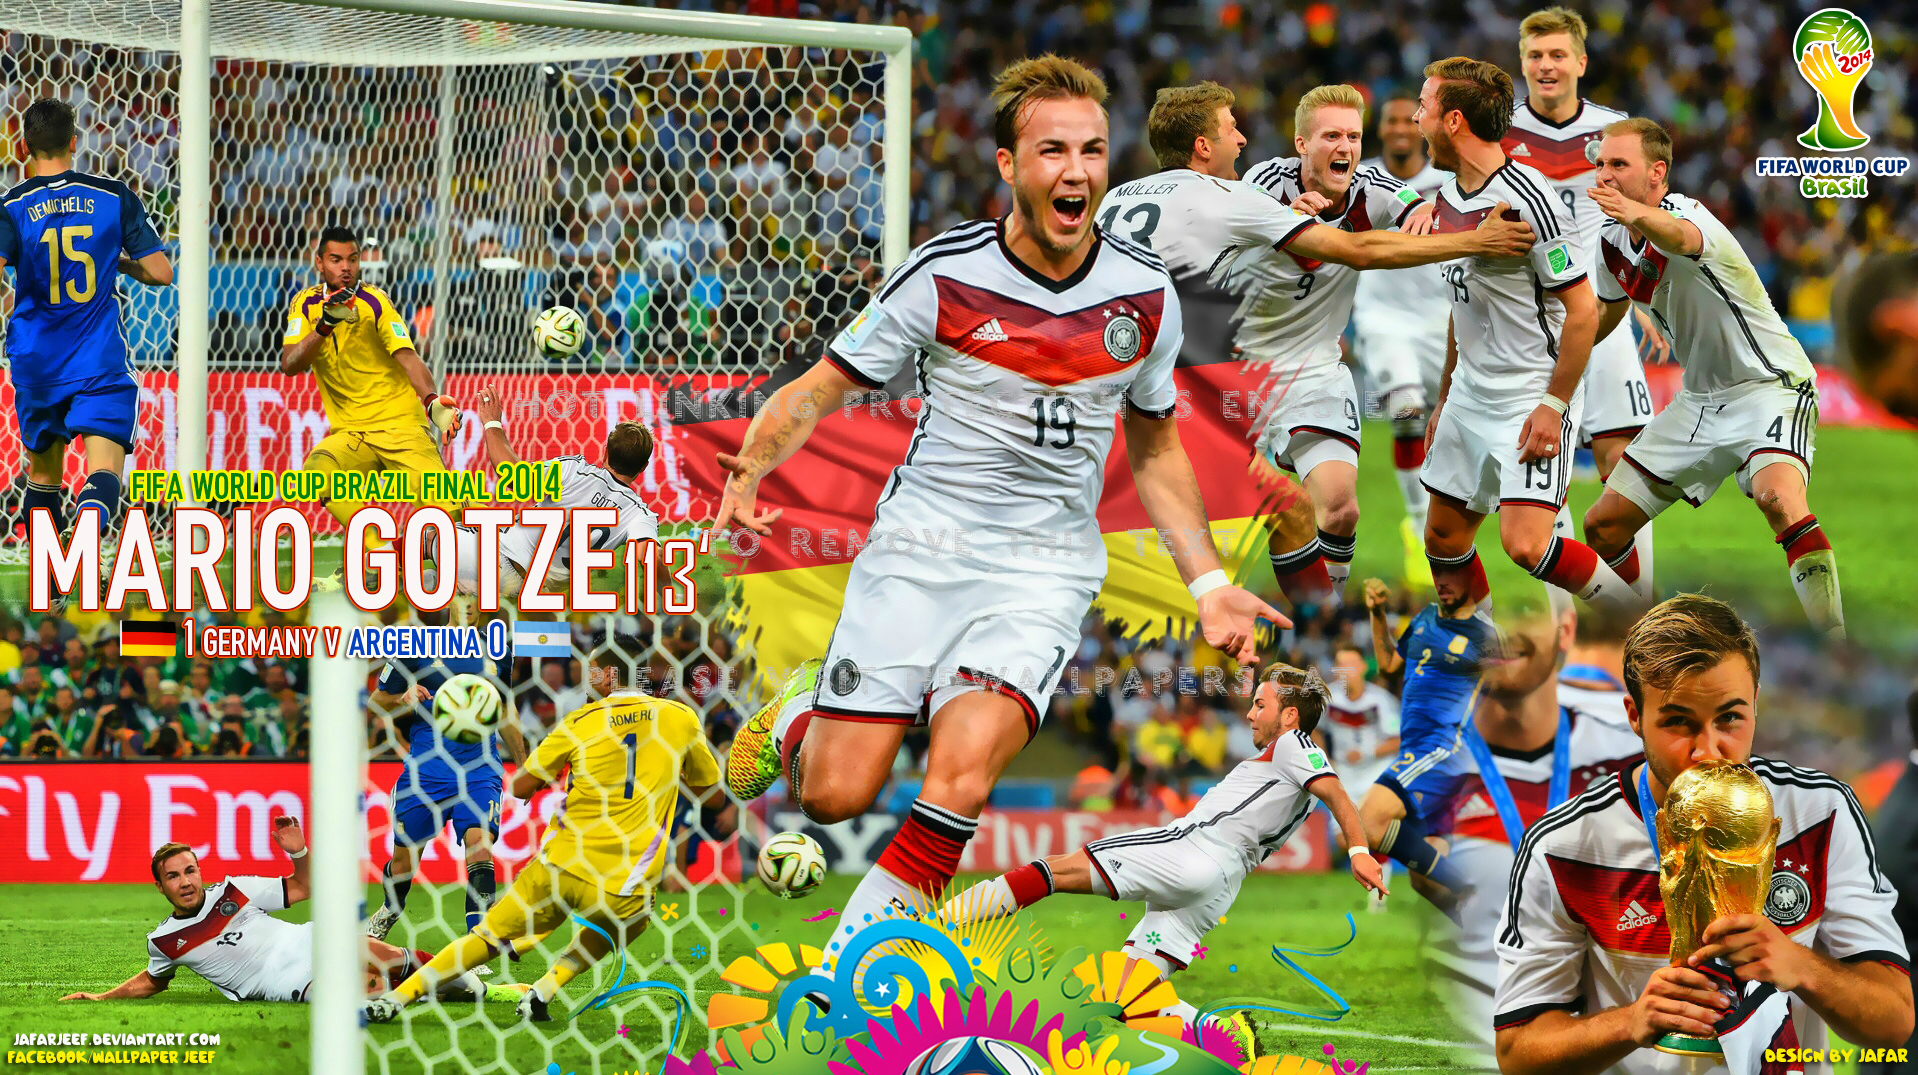 Background World Cup 2014 Final , HD Wallpaper & Backgrounds